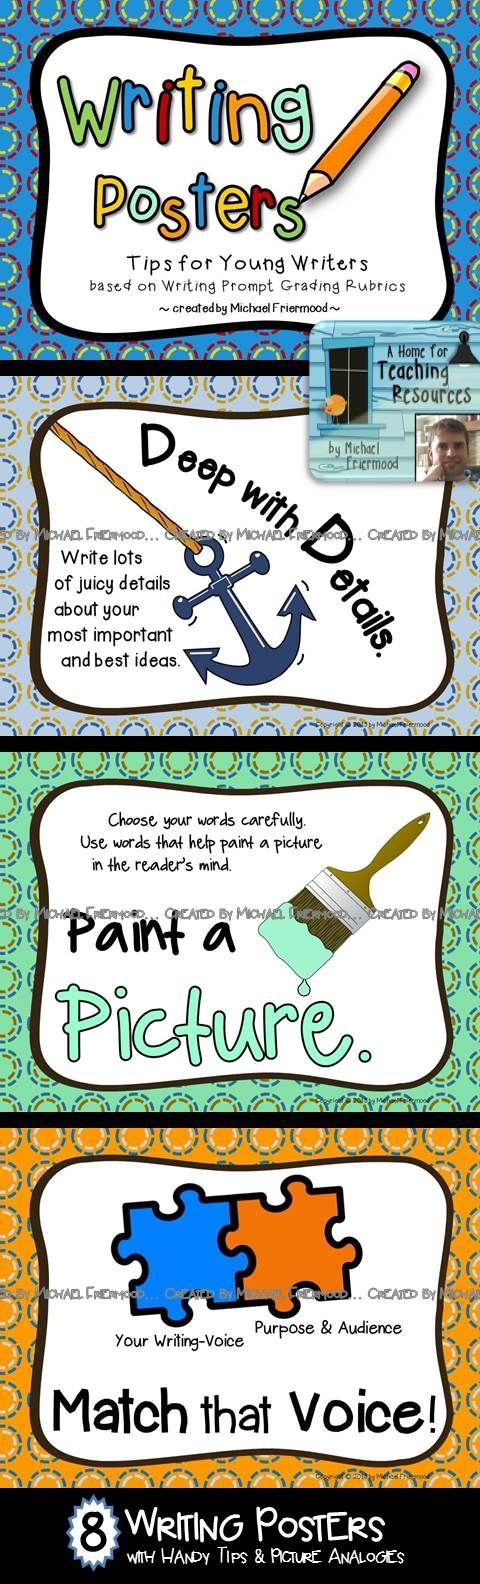 13 best rikki tikki tavi images on pinterest mongoose cinema and 8 colorful writing posters created based on writing prompt grading rubrics as well as traits of good writing each poster includes a memorable phrase fandeluxe Choice Image